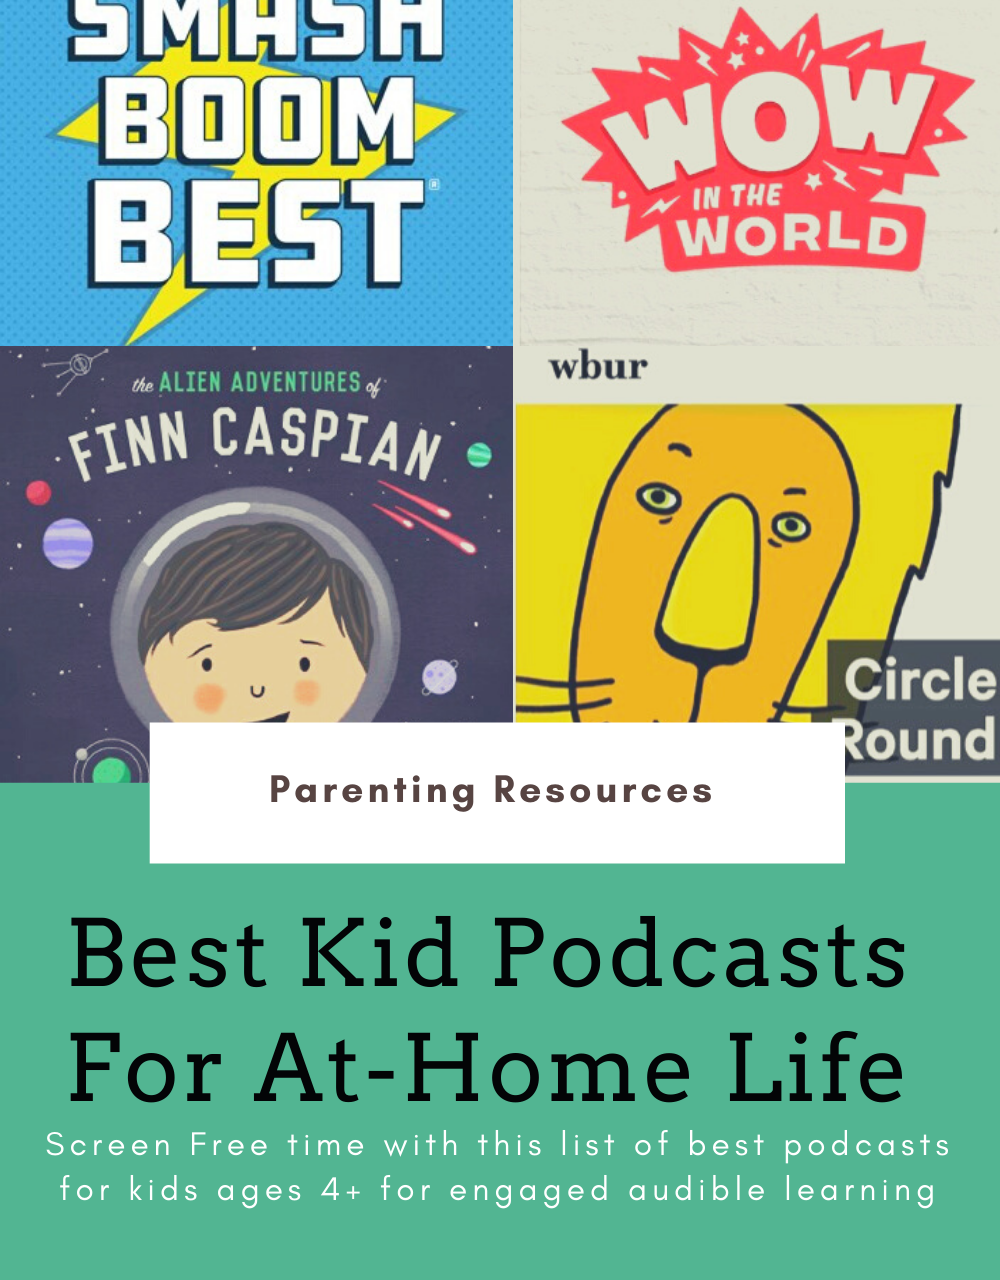 Best Kid Podcasts During a Pandemic